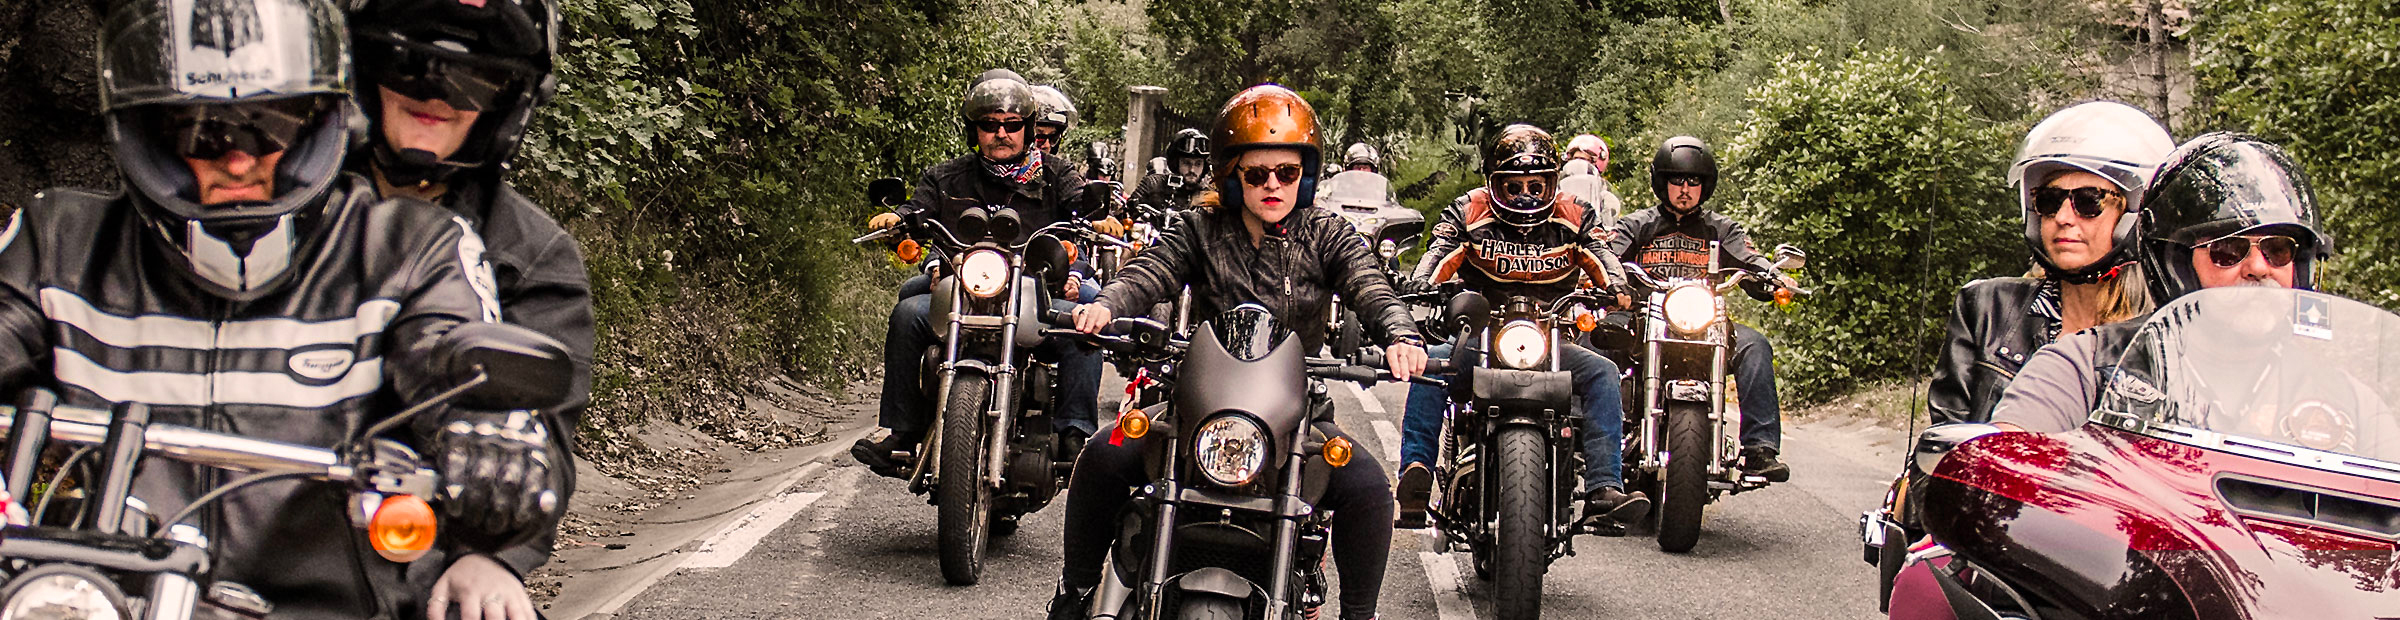 Harley-Davidson<sup>&reg;</sup> Events